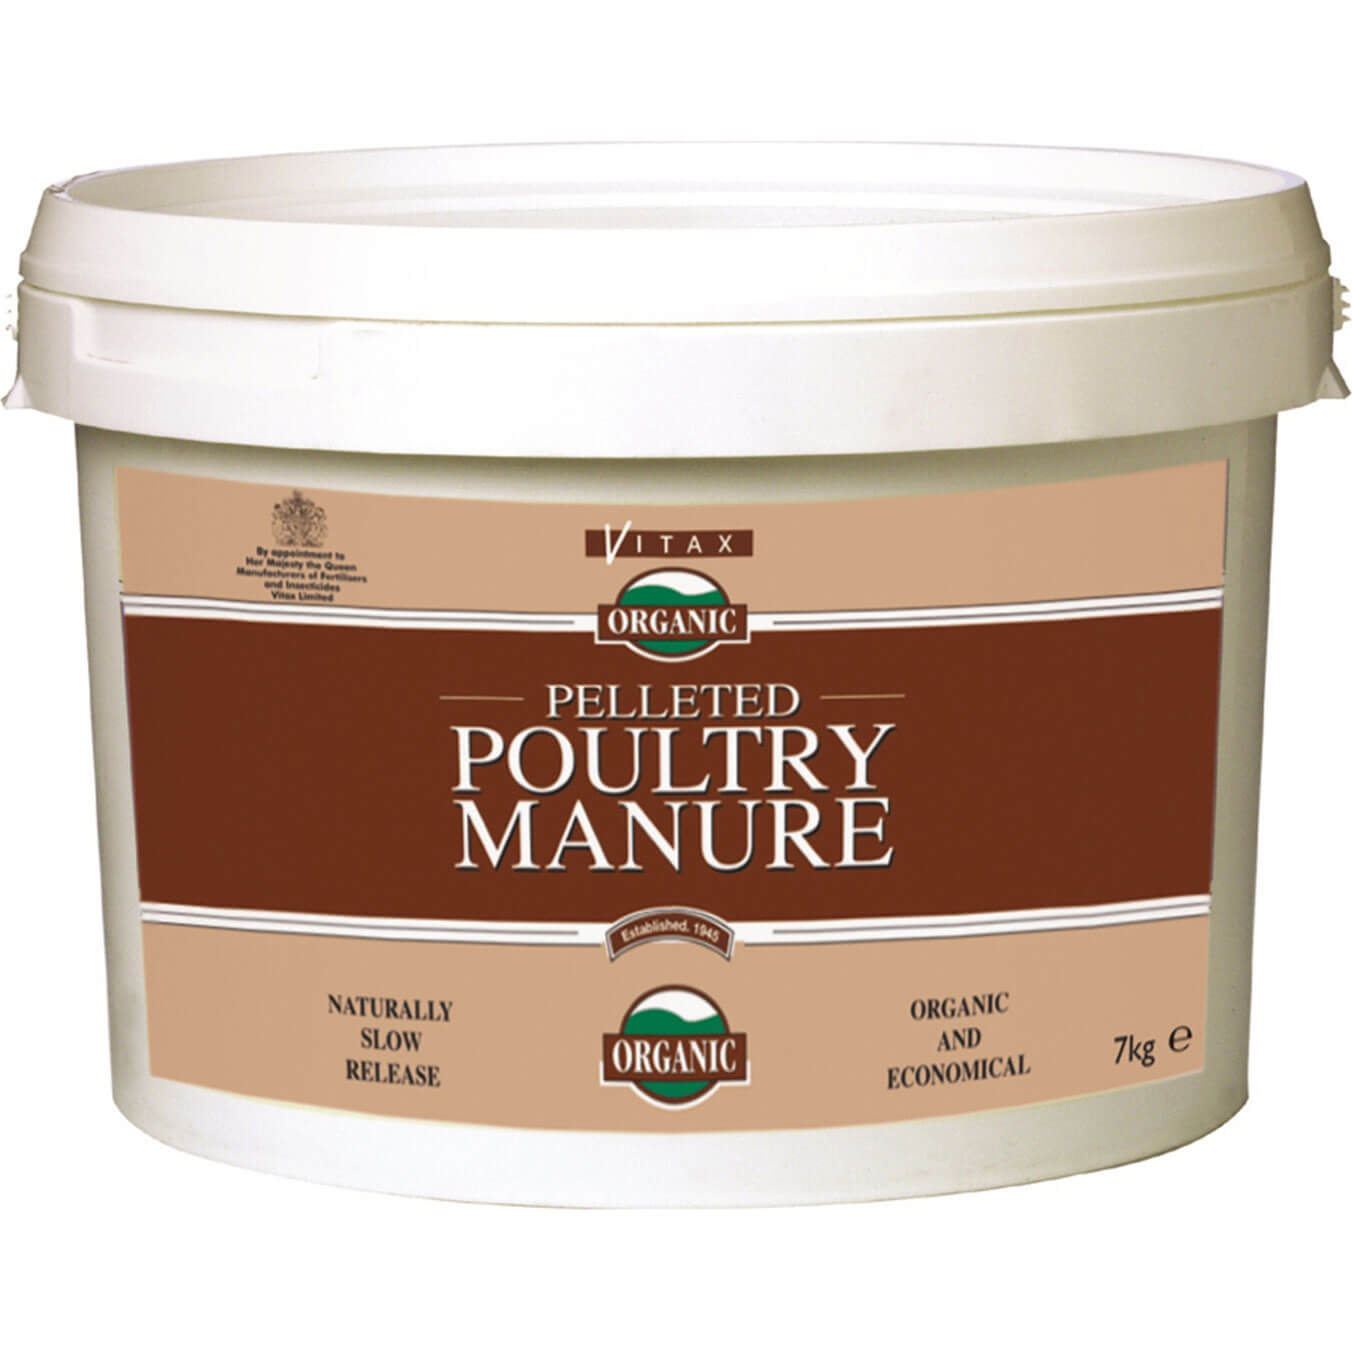 Vitax Pelleted Poultry Manure 7kg Tub